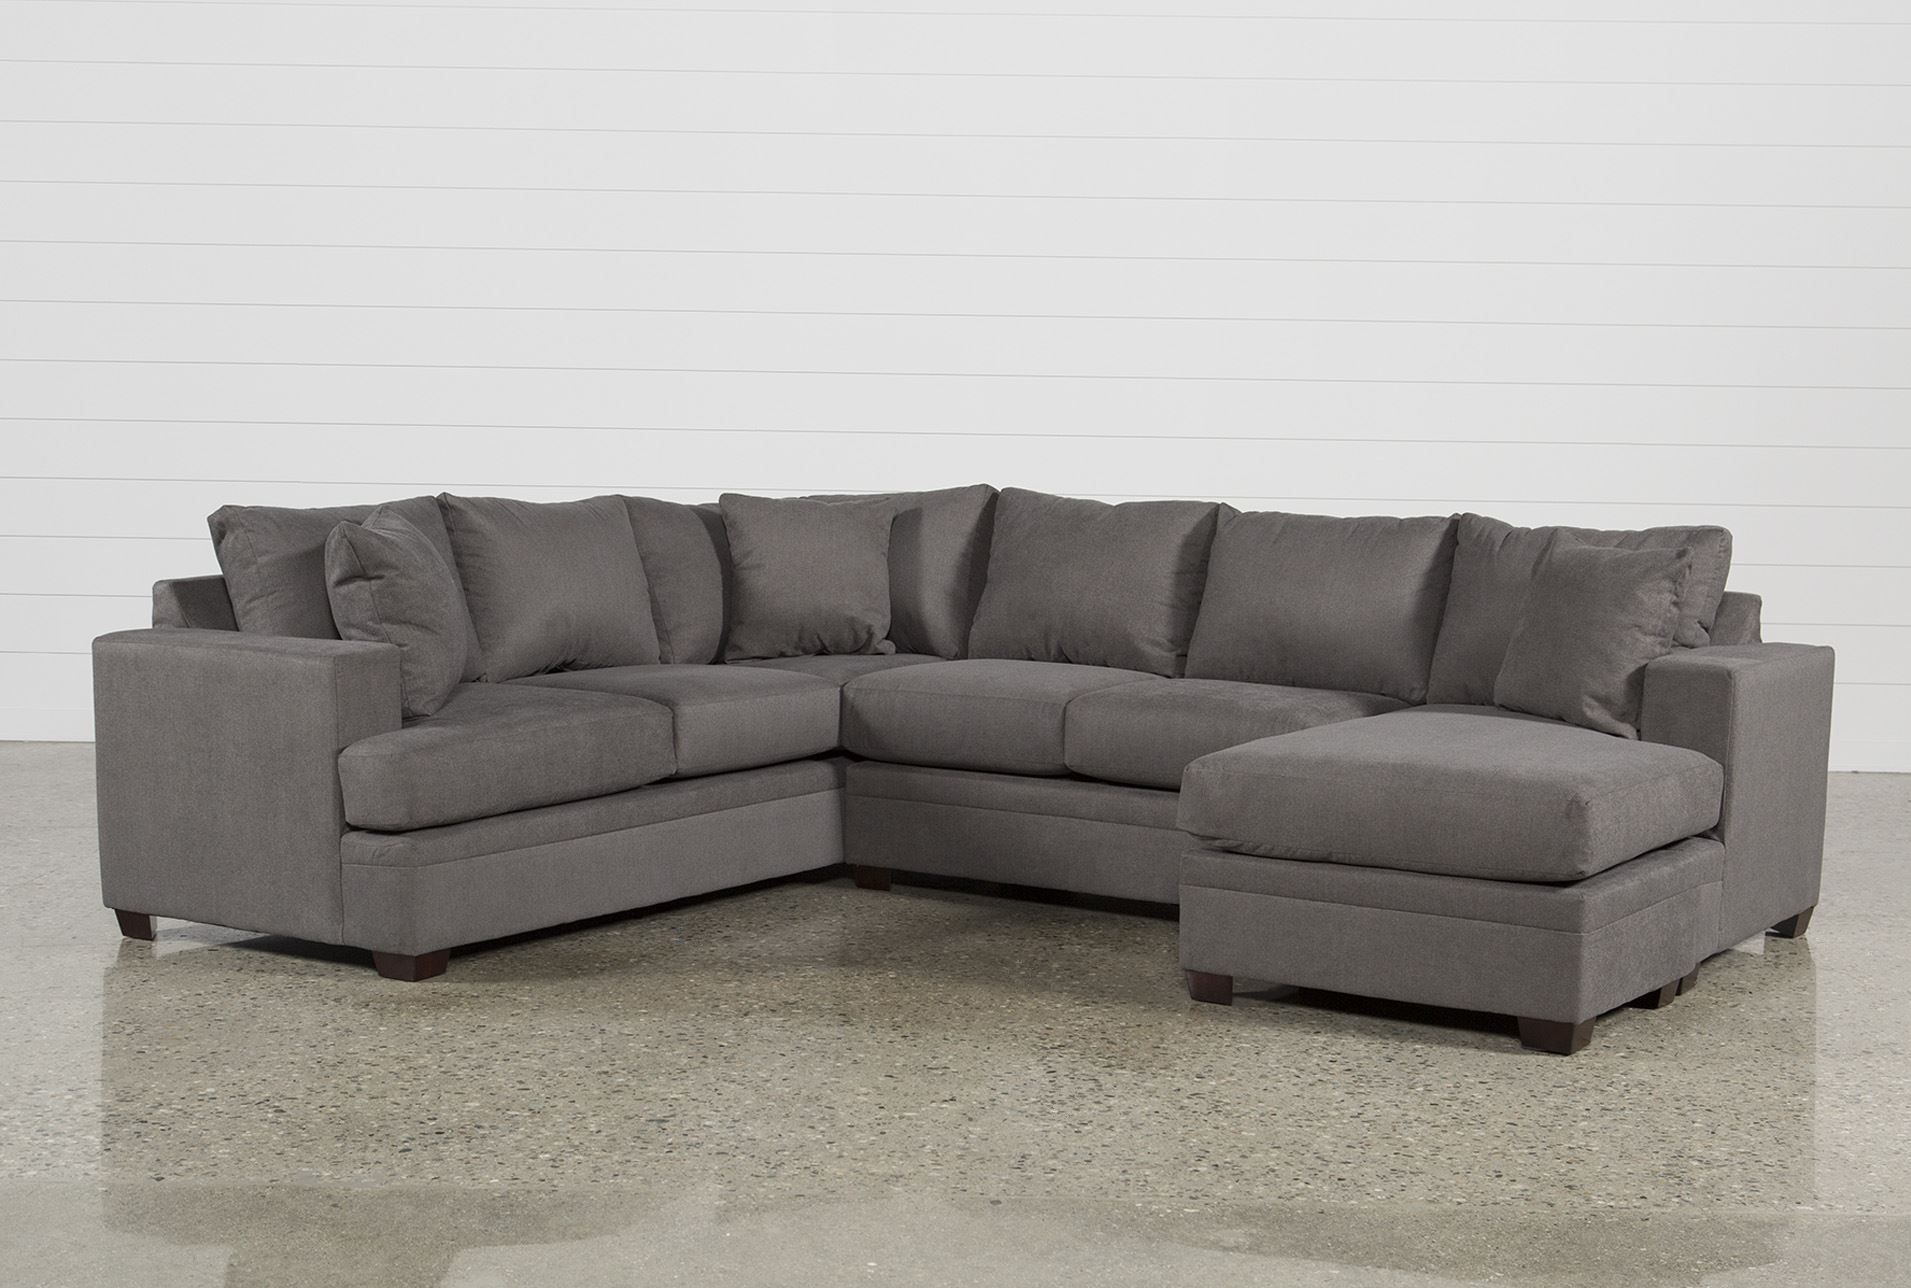 Kerri 2 Piece Sectional W/raf Chaise In 2018 | Products | Pinterest regarding Aspen 2 Piece Sectionals With Raf Chaise (Image 20 of 30)